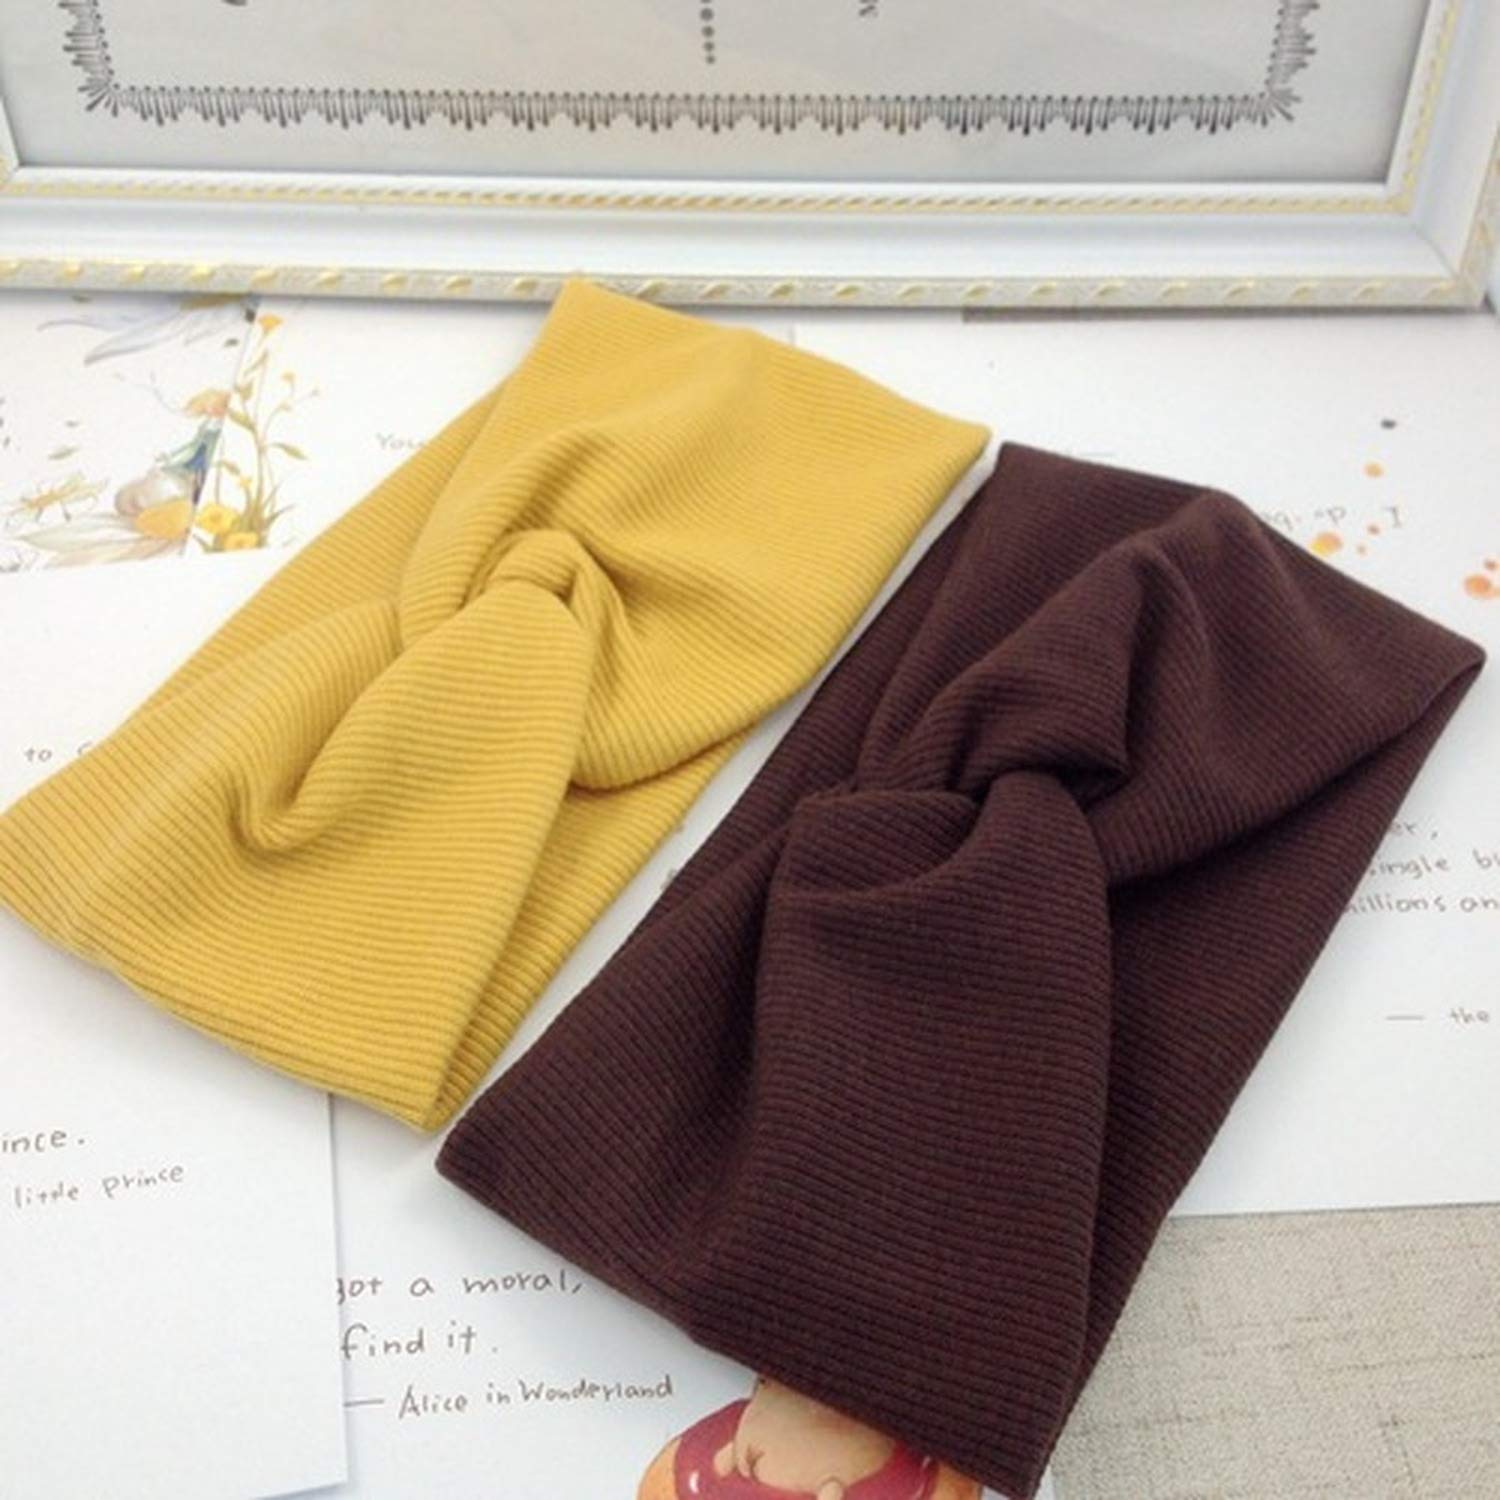 1PC Fashion sport headband New Turban Solid Headbands Girls Makeup Fabric Elastic Hair Band Twisted Knotted Hair Accessories,caramel colour,China